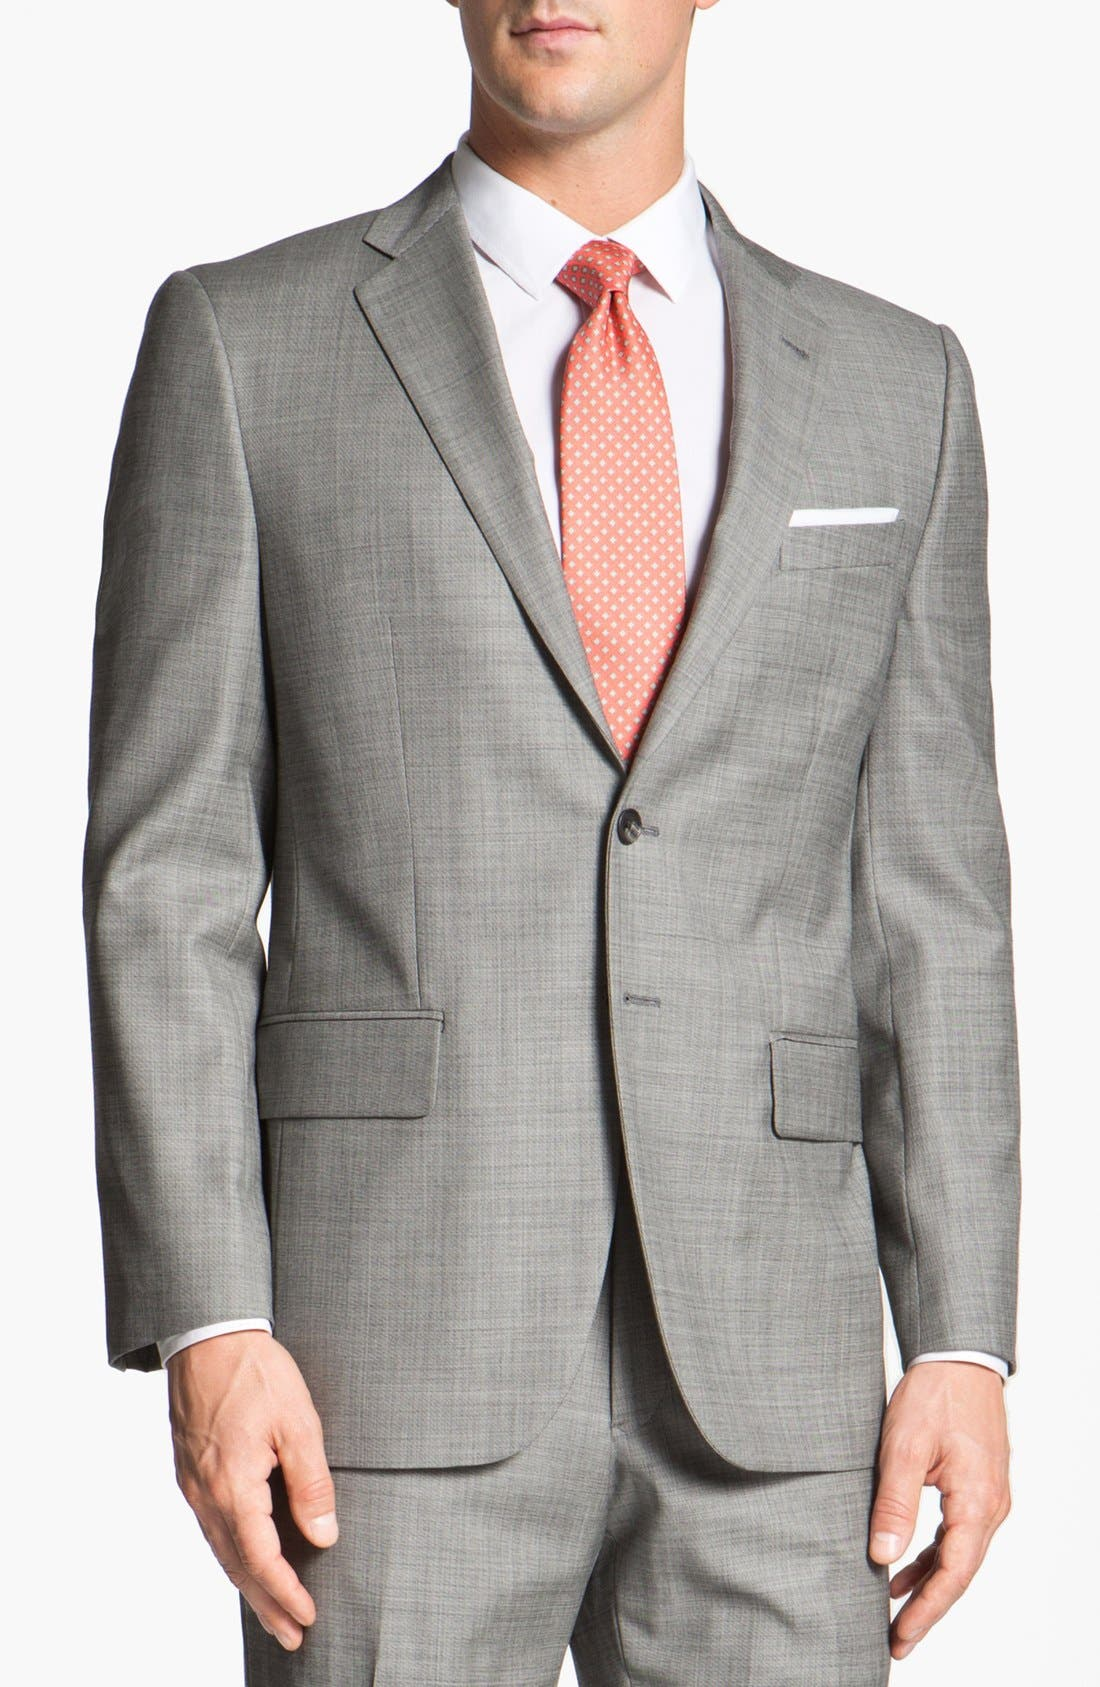 Alternate Image 1 Selected - Joseph Abboud 'Profile' Trim Fit Wool Suit (Online Only)